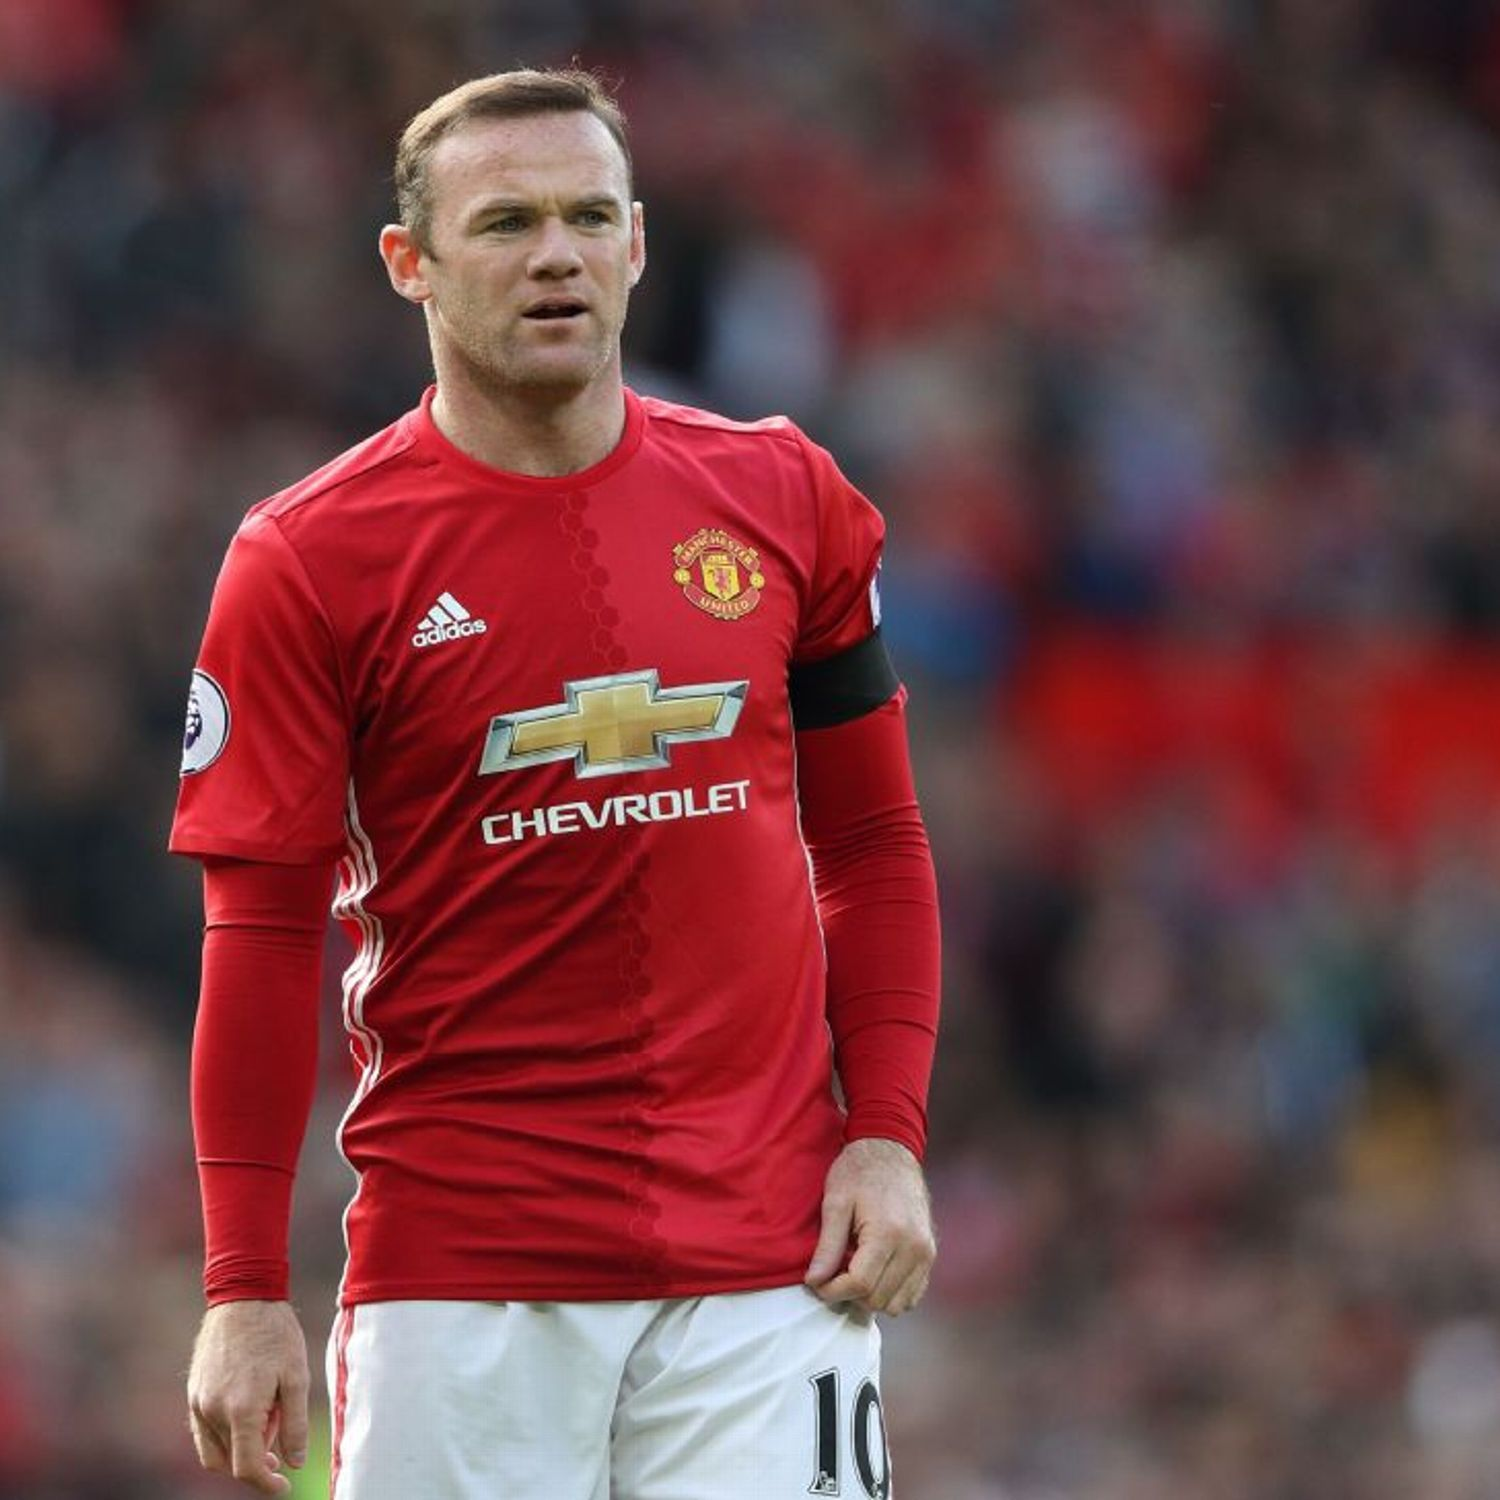 Lafc Is Attempting To Sign A Global Star In Time For The Club S Mls Debut In 2018 With The Expansion Fr Manchester United Phil Jones Los Angeles Football Club